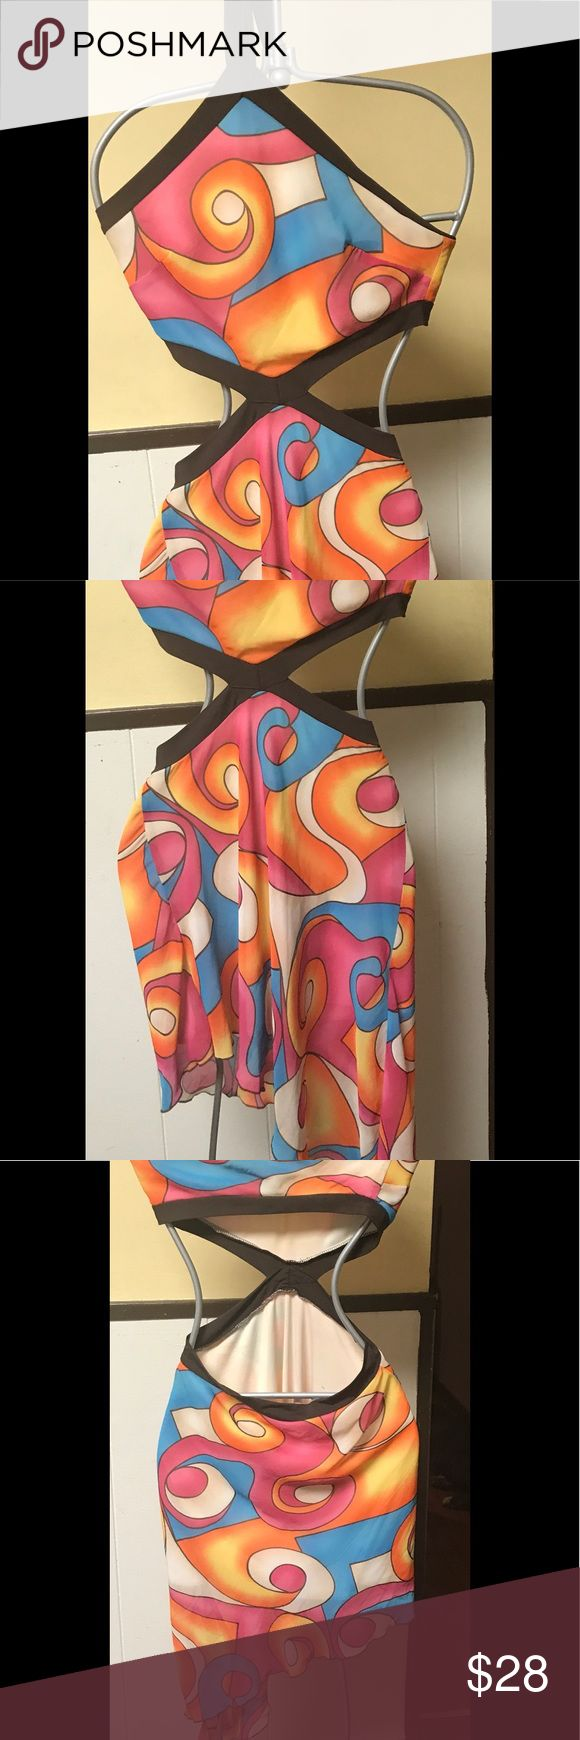 Hot Summer medium club dress Medium Summer handkerchief club dress brown edges with hot pink and orange  colors worn once. Looks awesome with a tan and a night out dancing salsa Dresses Asymmetrical